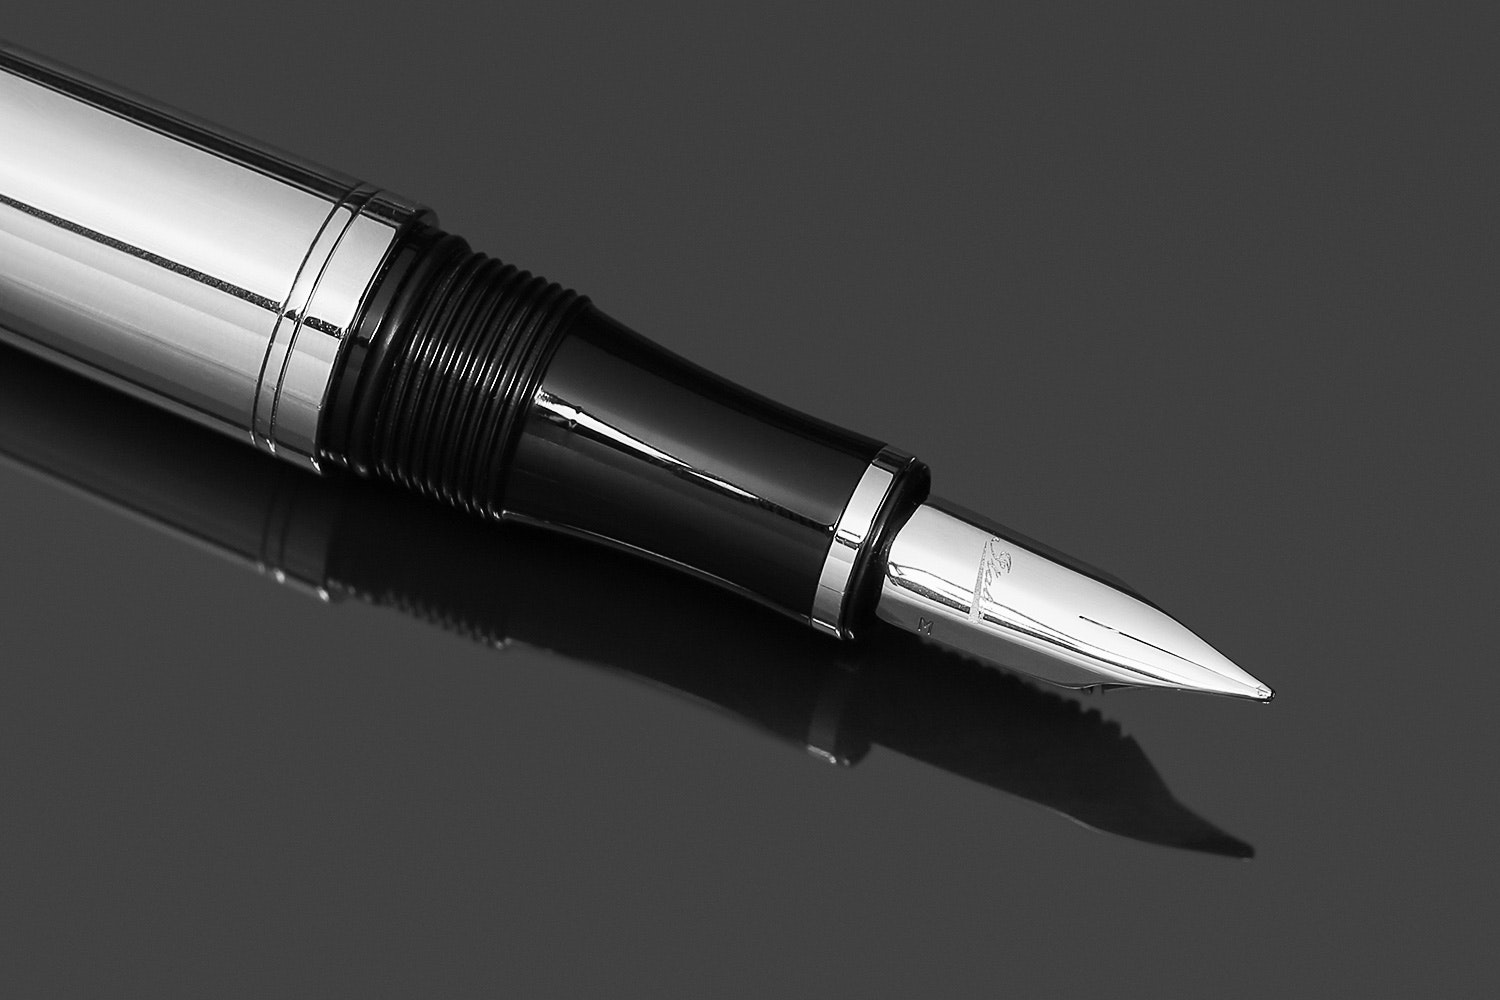 Italix Commodore's Credential Fountain Pen